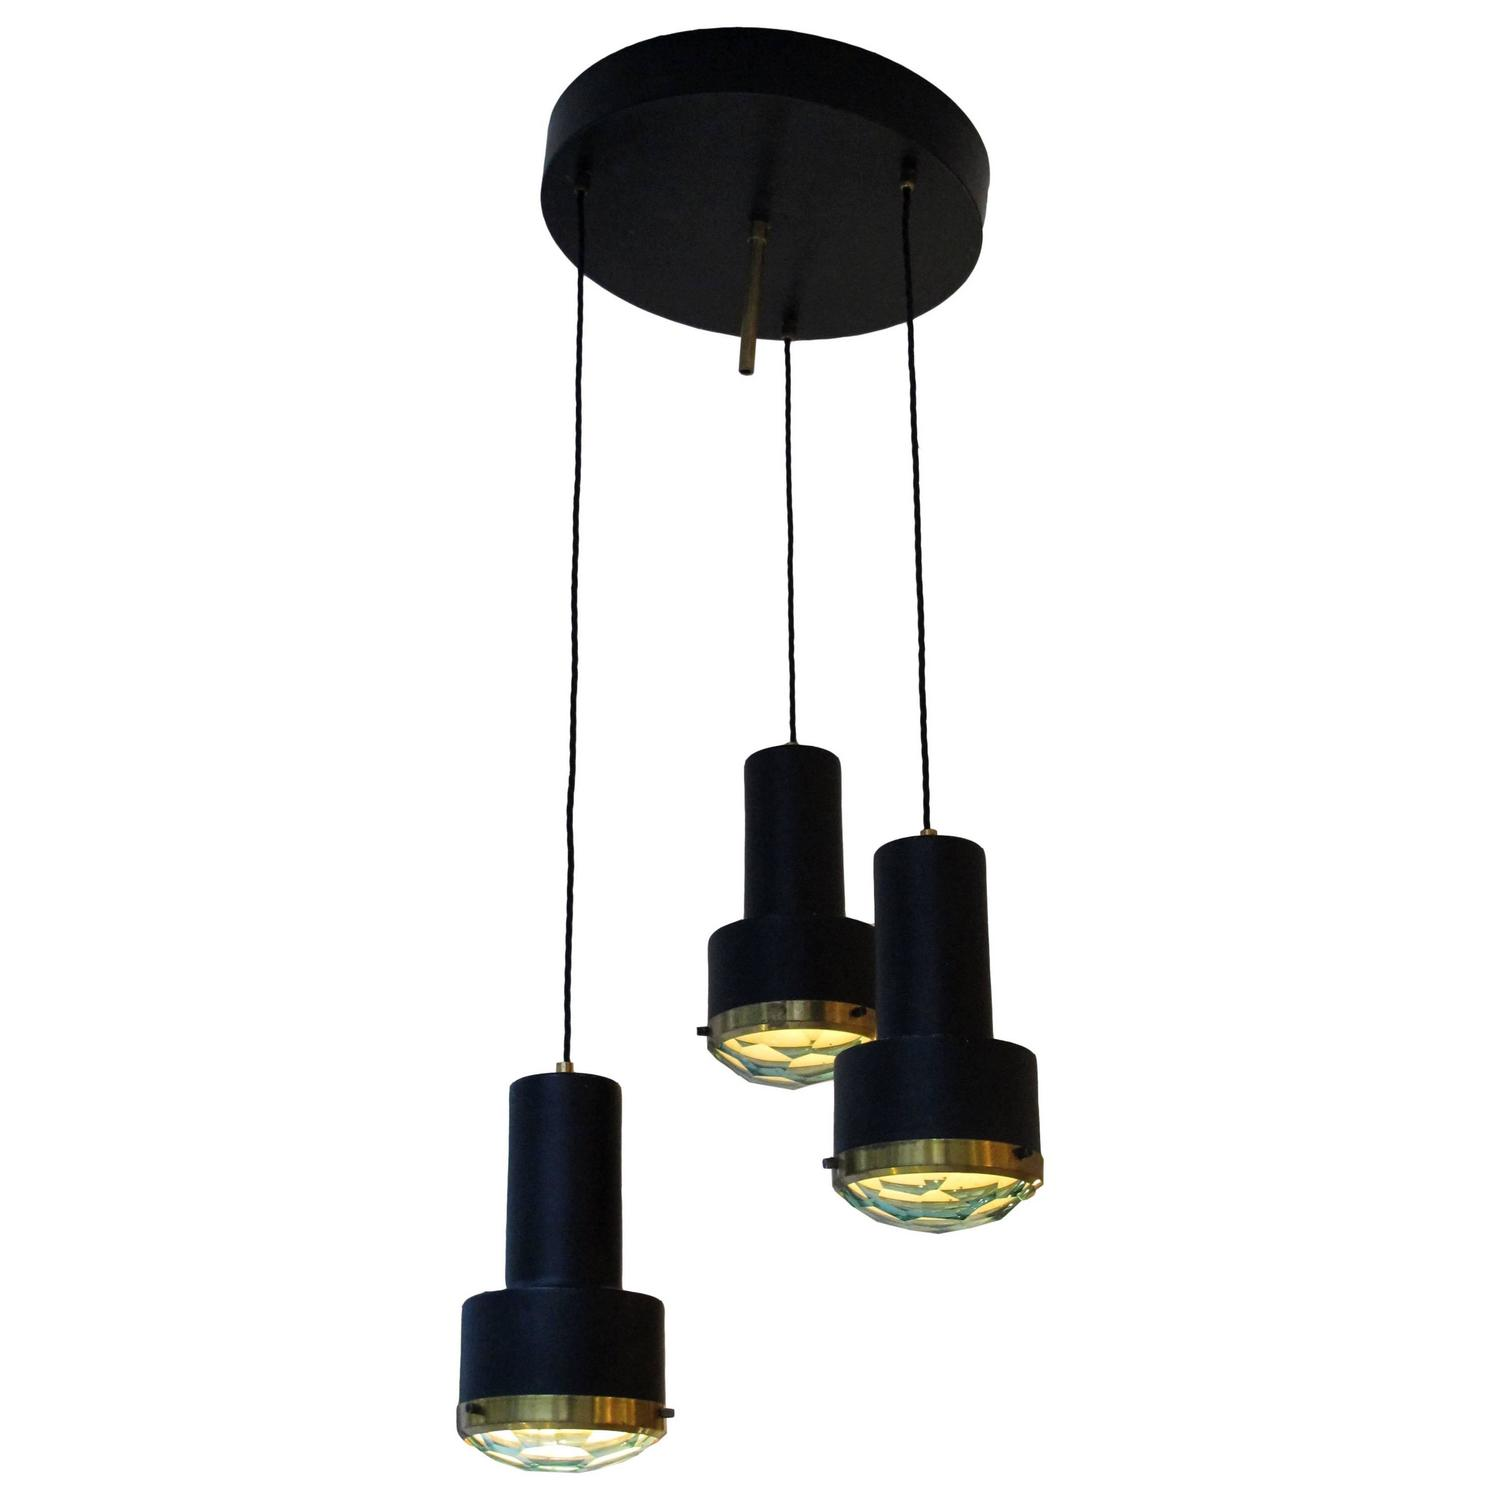 Three Light Pendant Chandelier By Stilnovo For Sale At 1stdibs